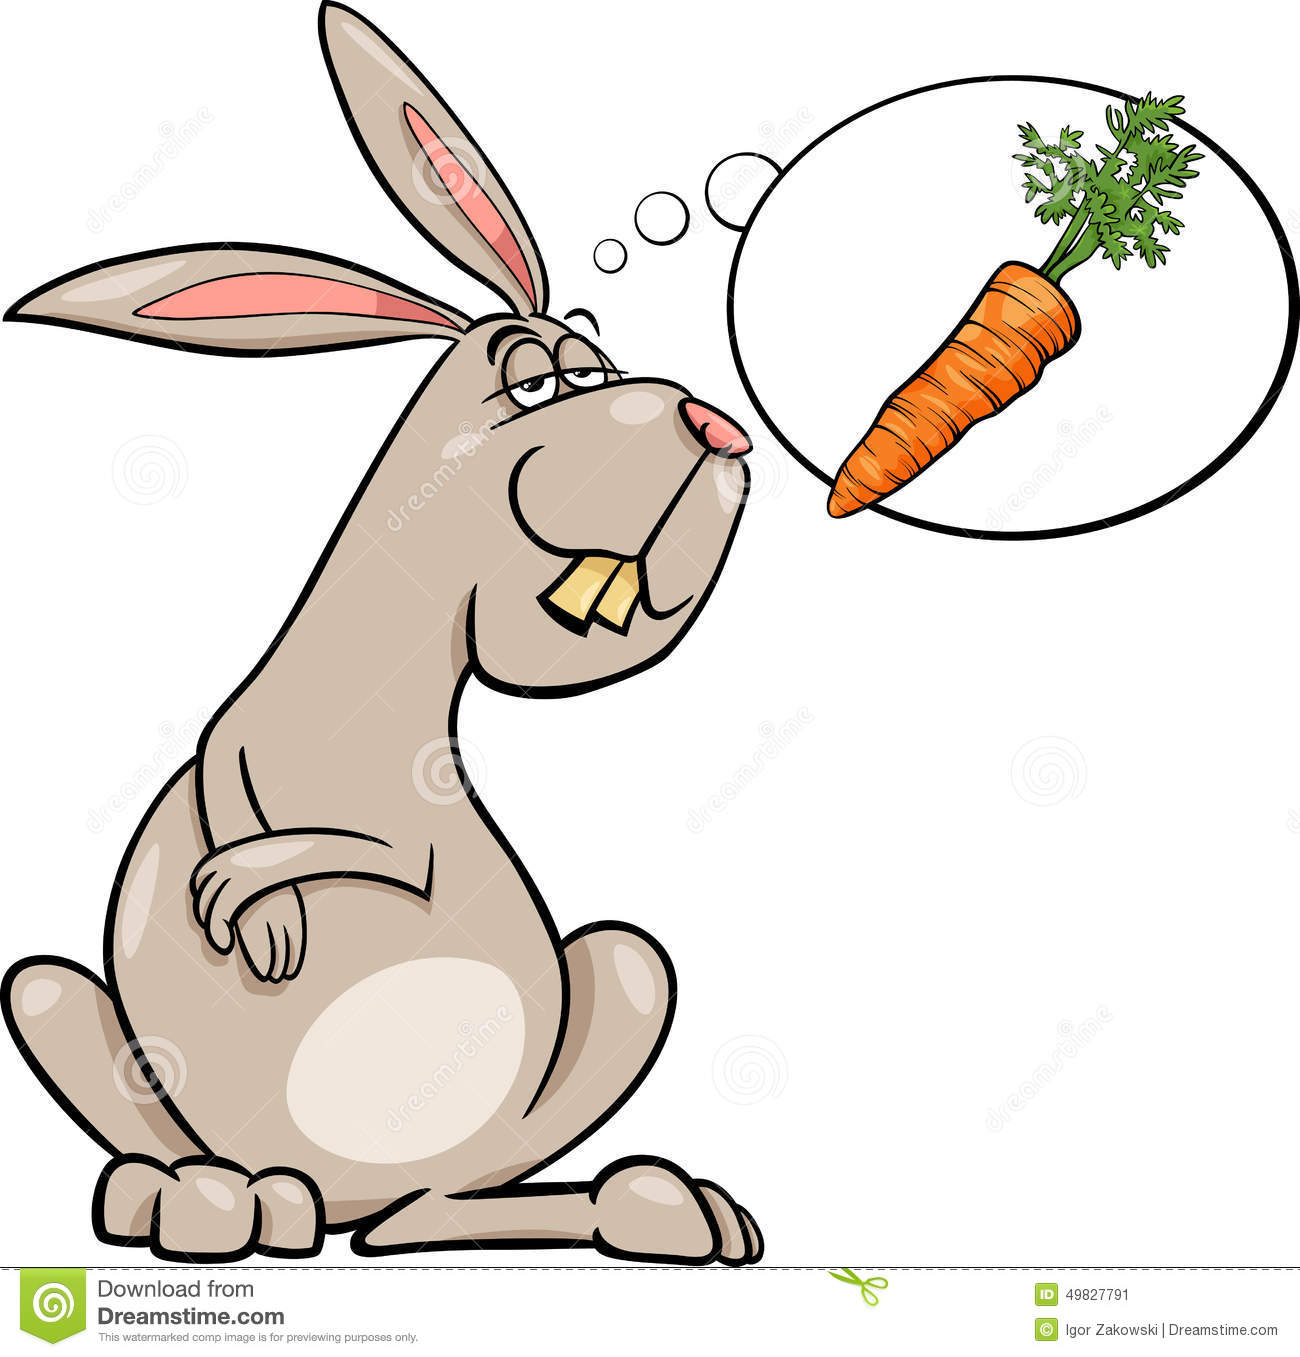 Rabbit Dream About Carrot Cartoon Stock Vector - Image: 49827791